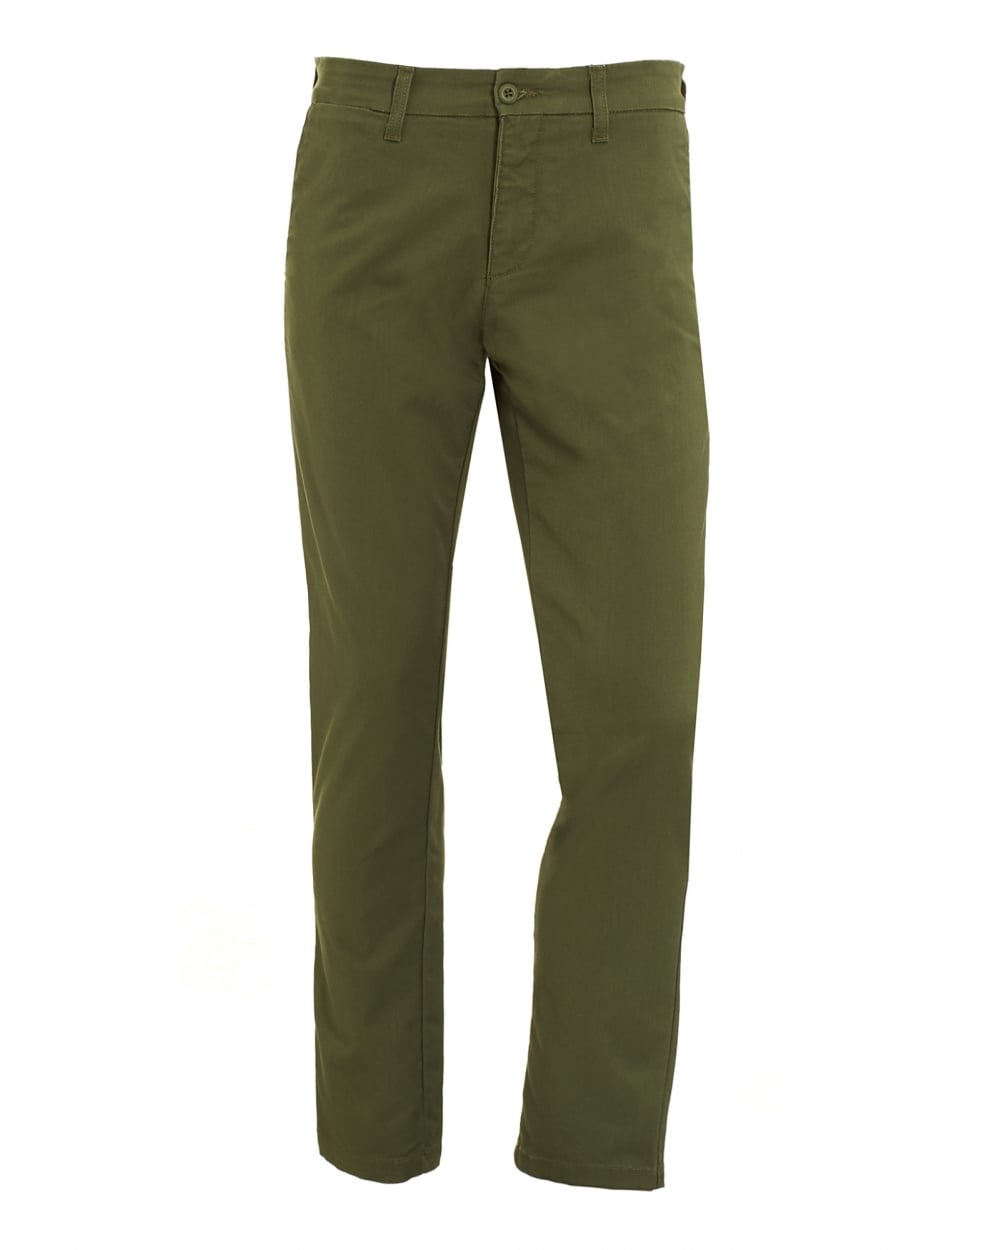 Shop for mens twill pants online at Target. Free shipping on purchases over $35 and save 5% every day with your Target REDcard.